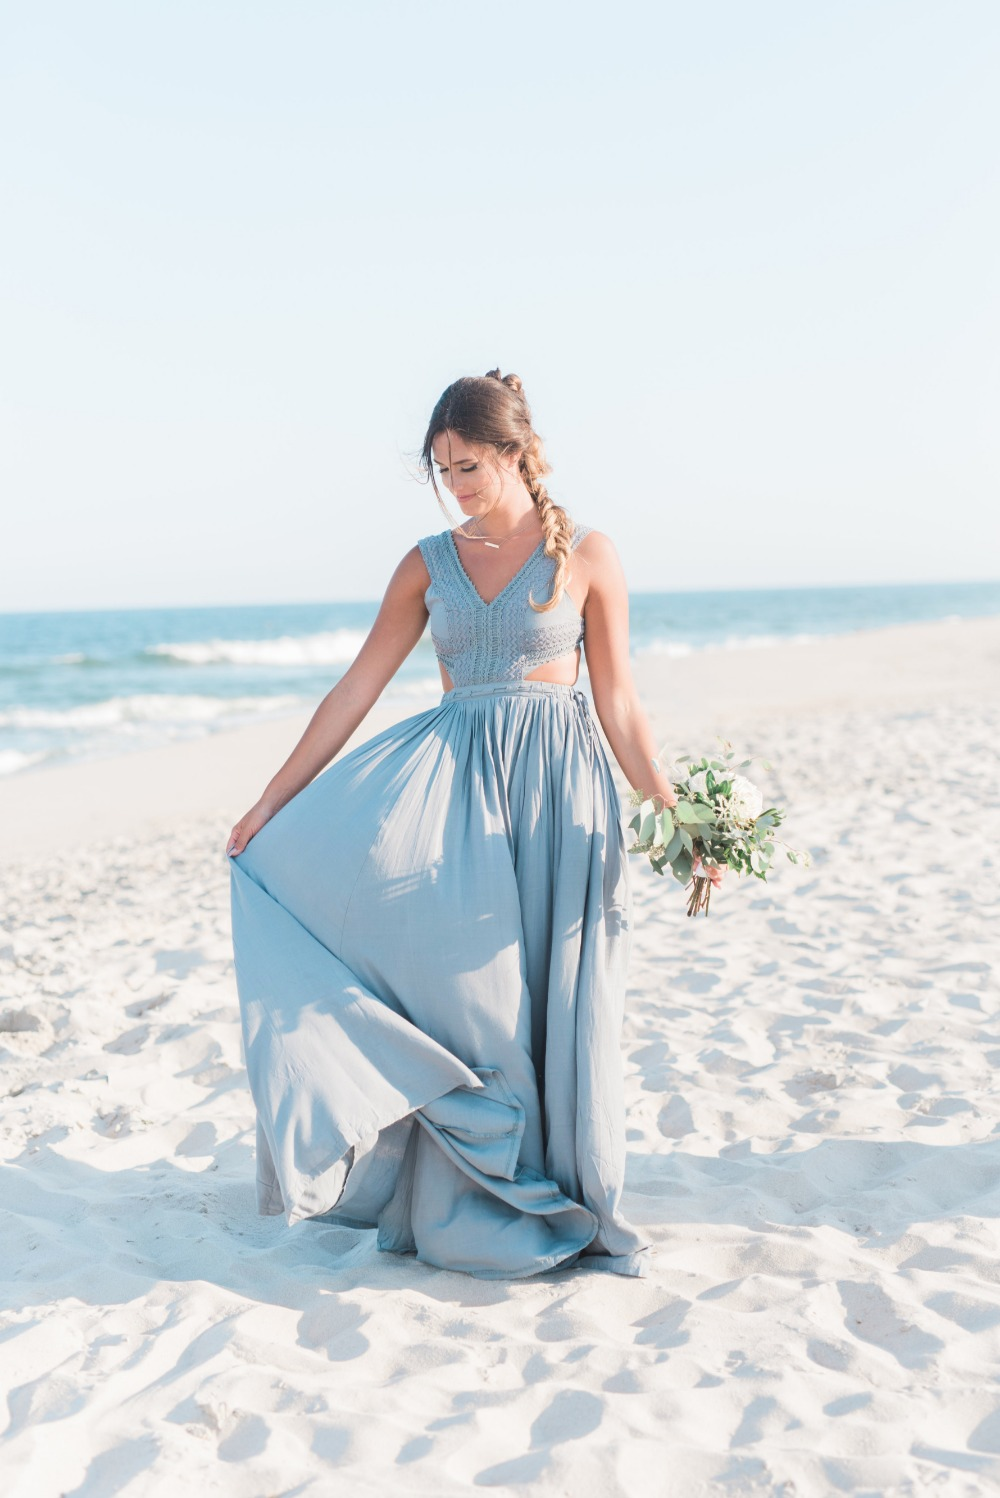 Elegant and Rustic Beachy Boho Wedding Ideas Inspired By The Sea